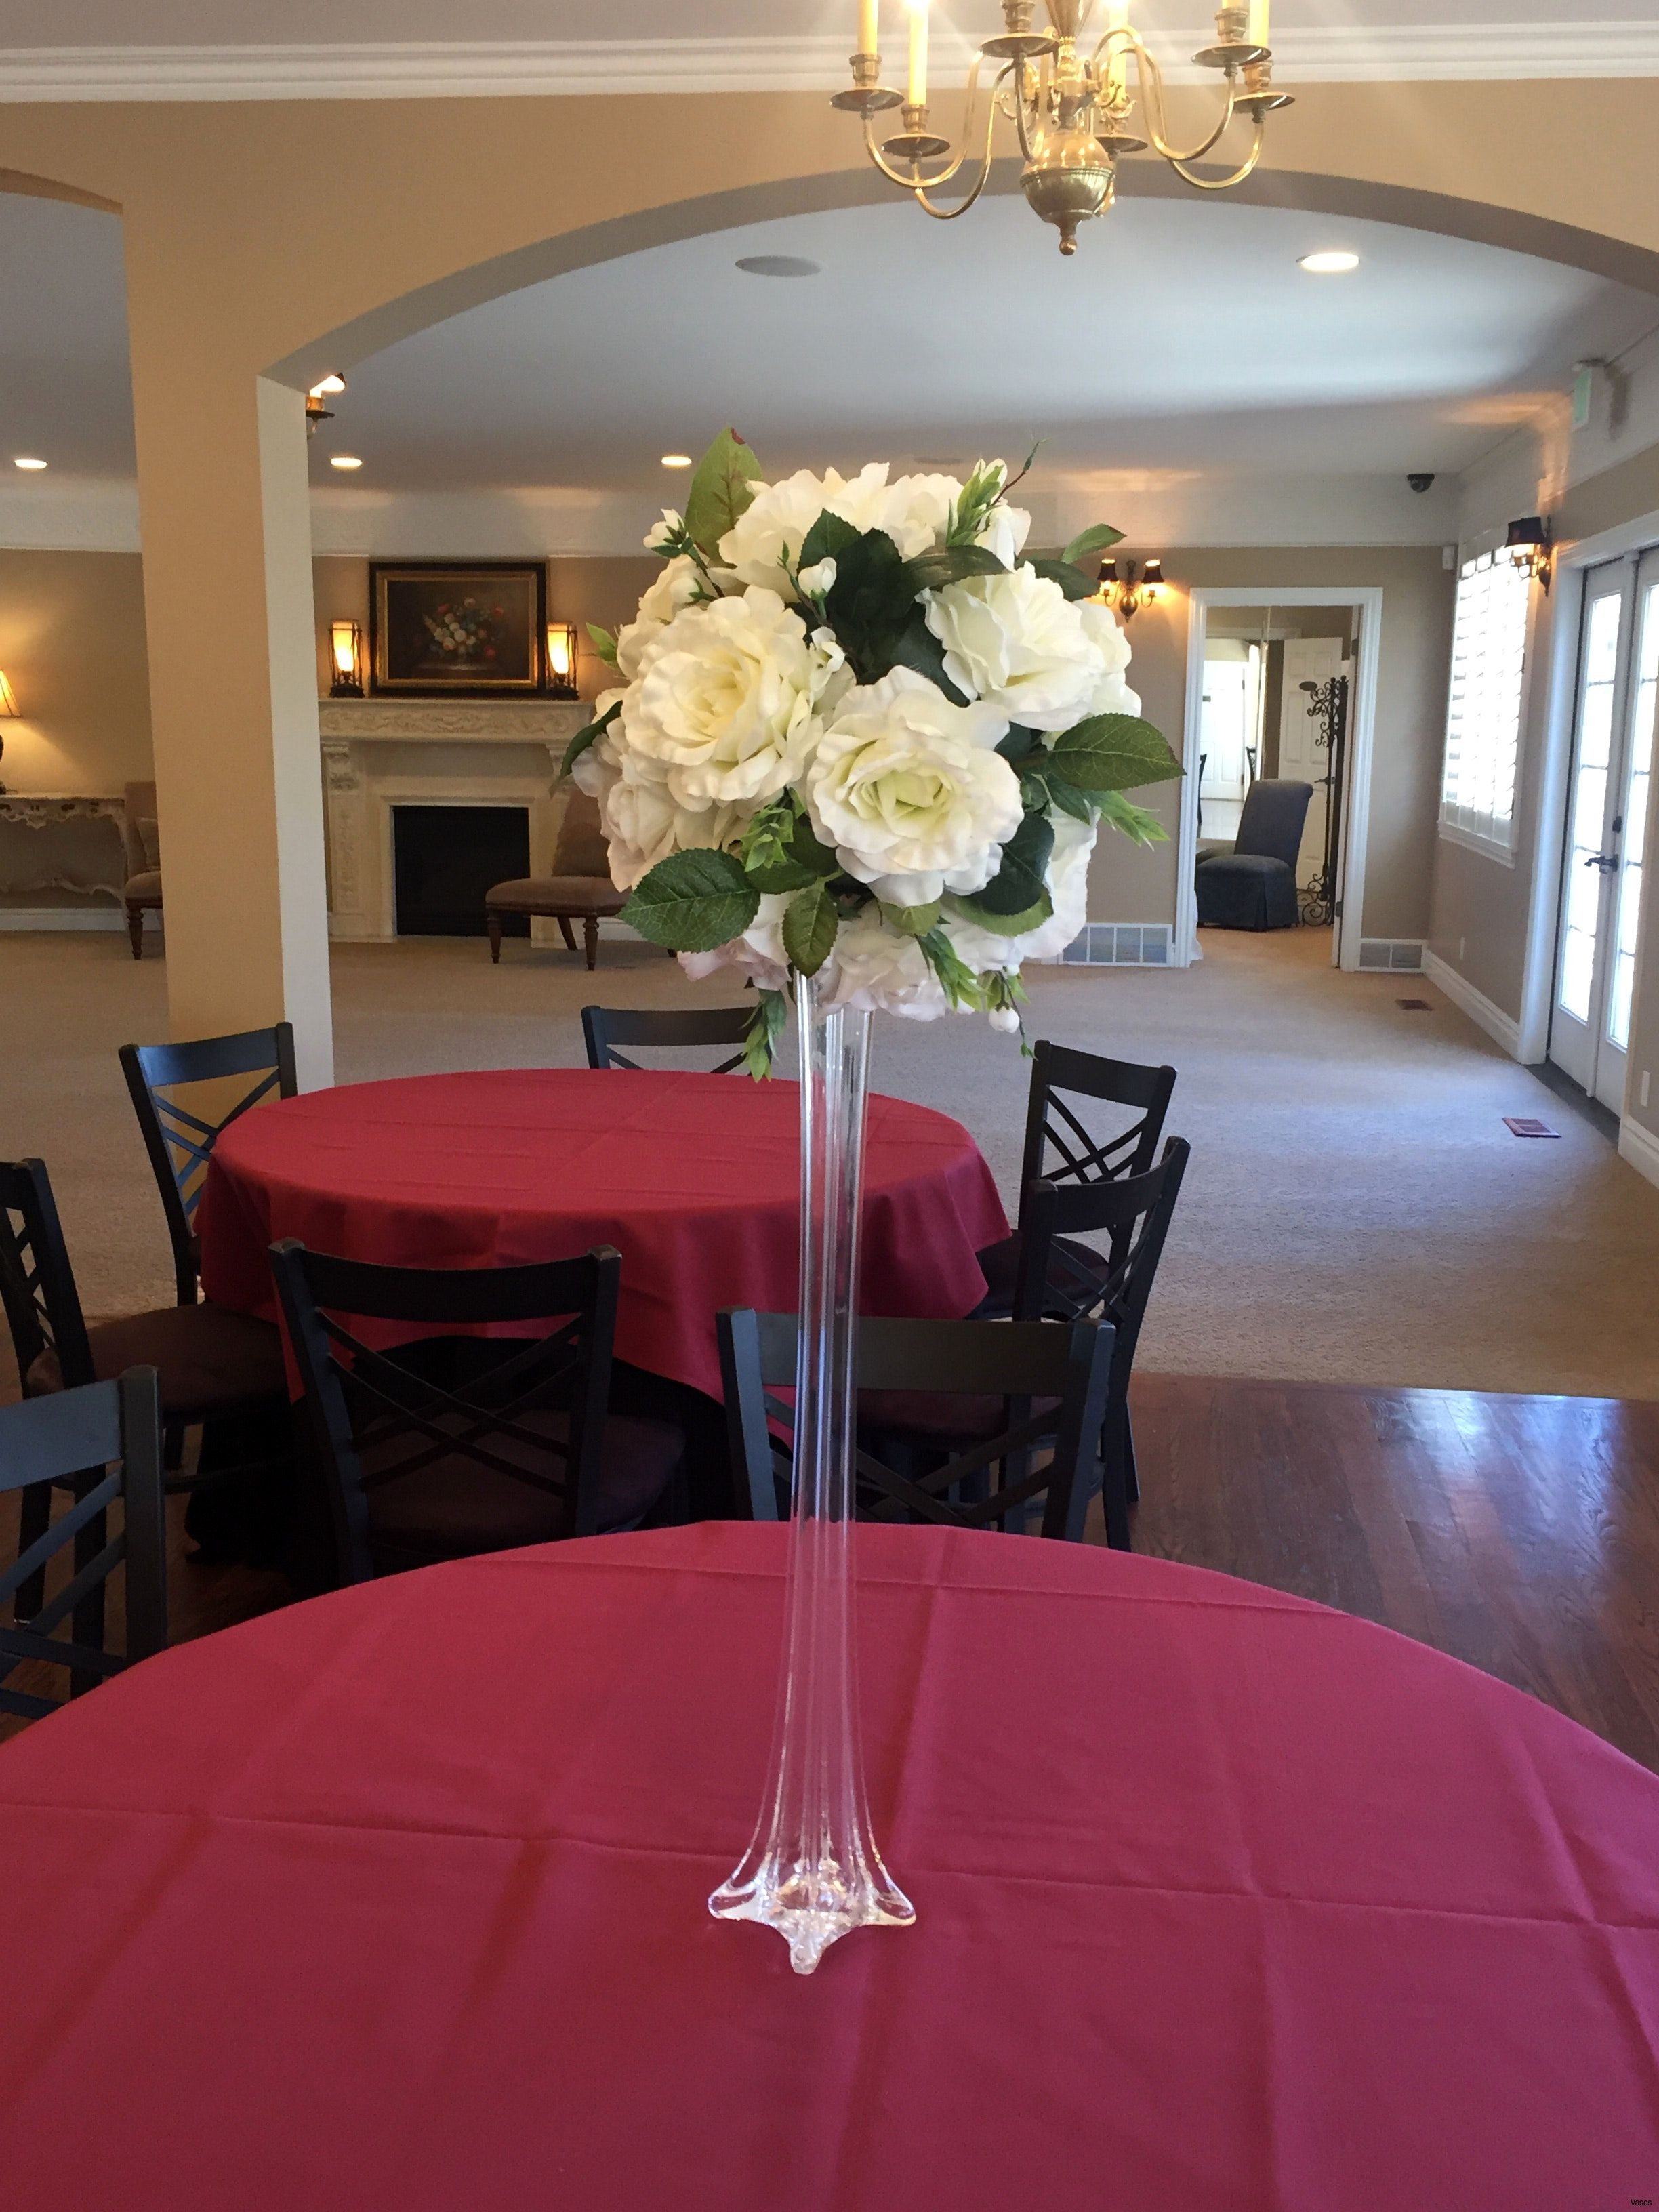 11 Stylish 24 Inch Flower Vase 2021 free download 24 inch flower vase of 24 tall vases for sale the weekly world in lovely wedding decoration rental wedding decoration rental awesome eiffel tower vases centerpieces vtw01 24 inch clear white